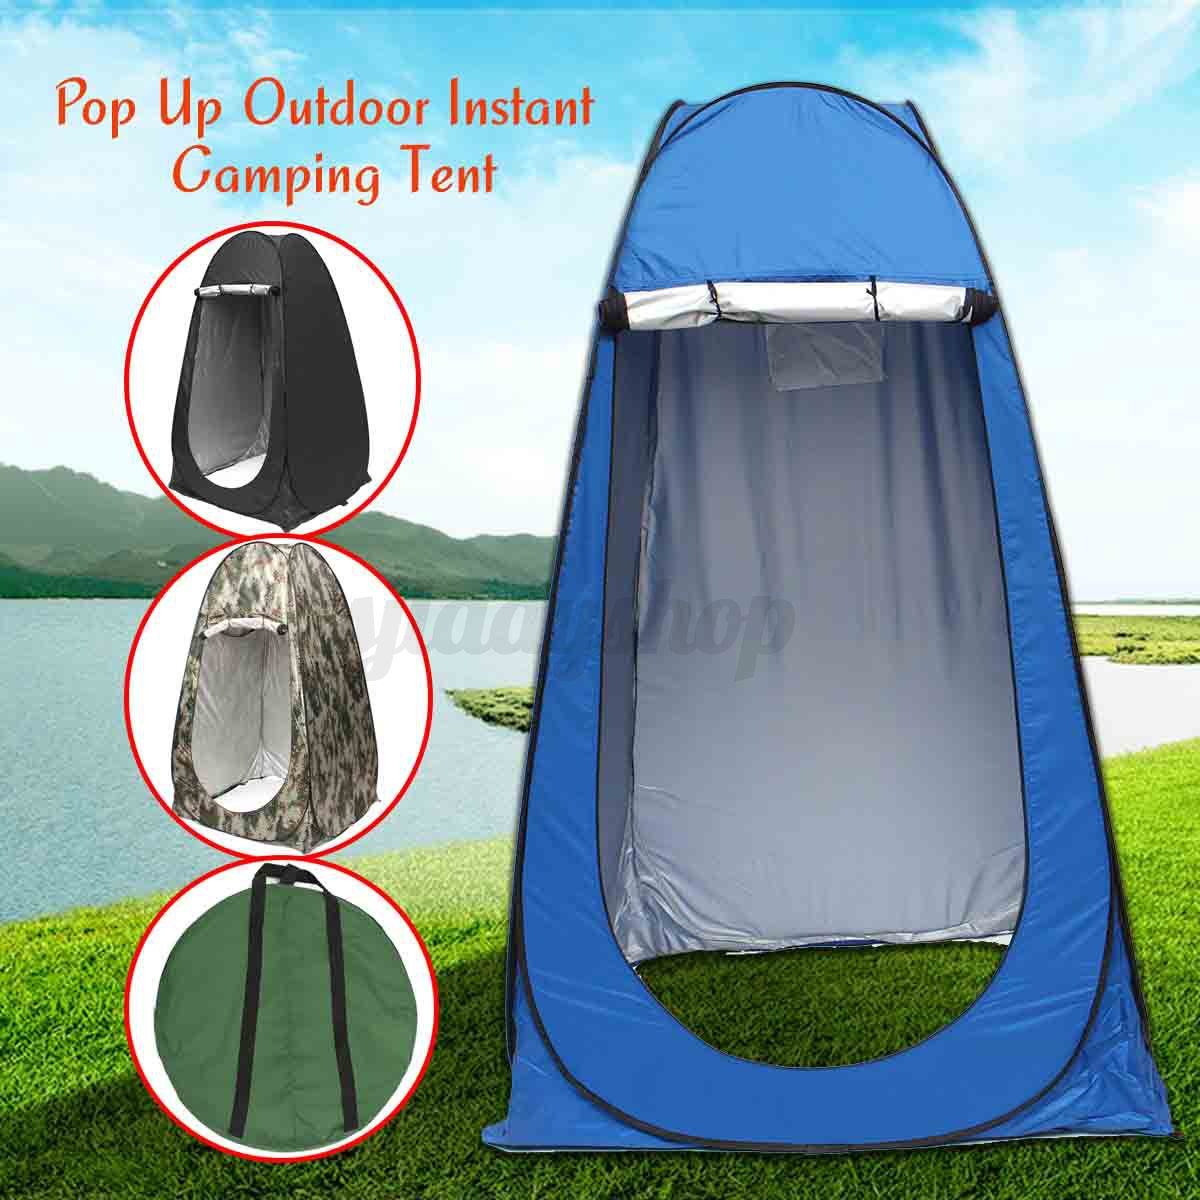 Image is loading Pop-Up-Portable-Privacy-Changing-Dressing-Room-Tent-  sc 1 st  eBay & Pop Up Portable Privacy Changing Dressing Room Tent Toilet Beach ...